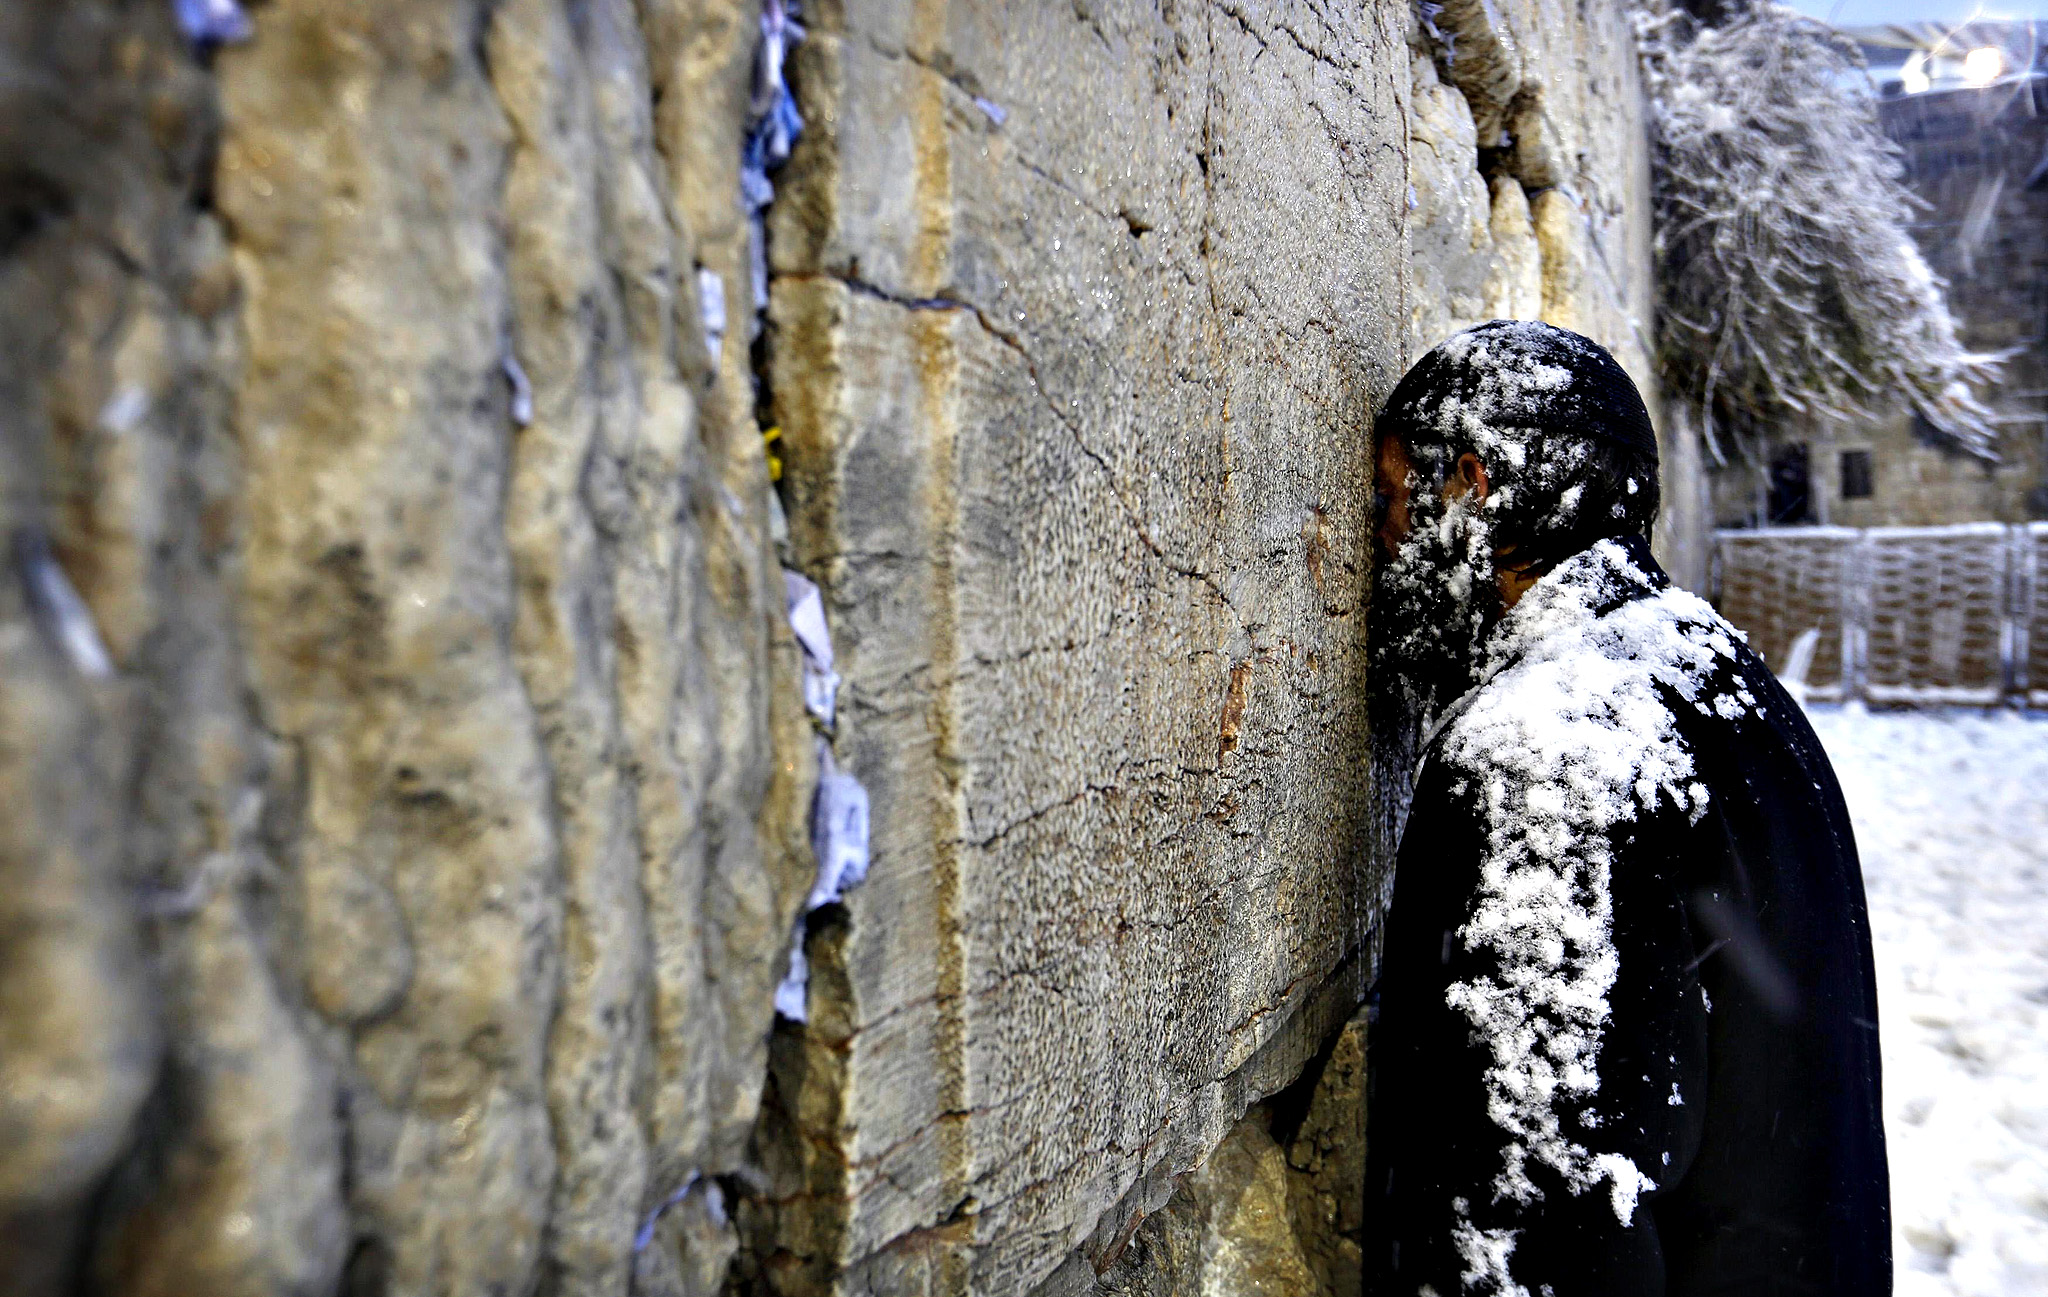 An Ultra-Orthodox Jewish man prays at  the Western Wall in Jerusalem's Old City during a snowstorm.